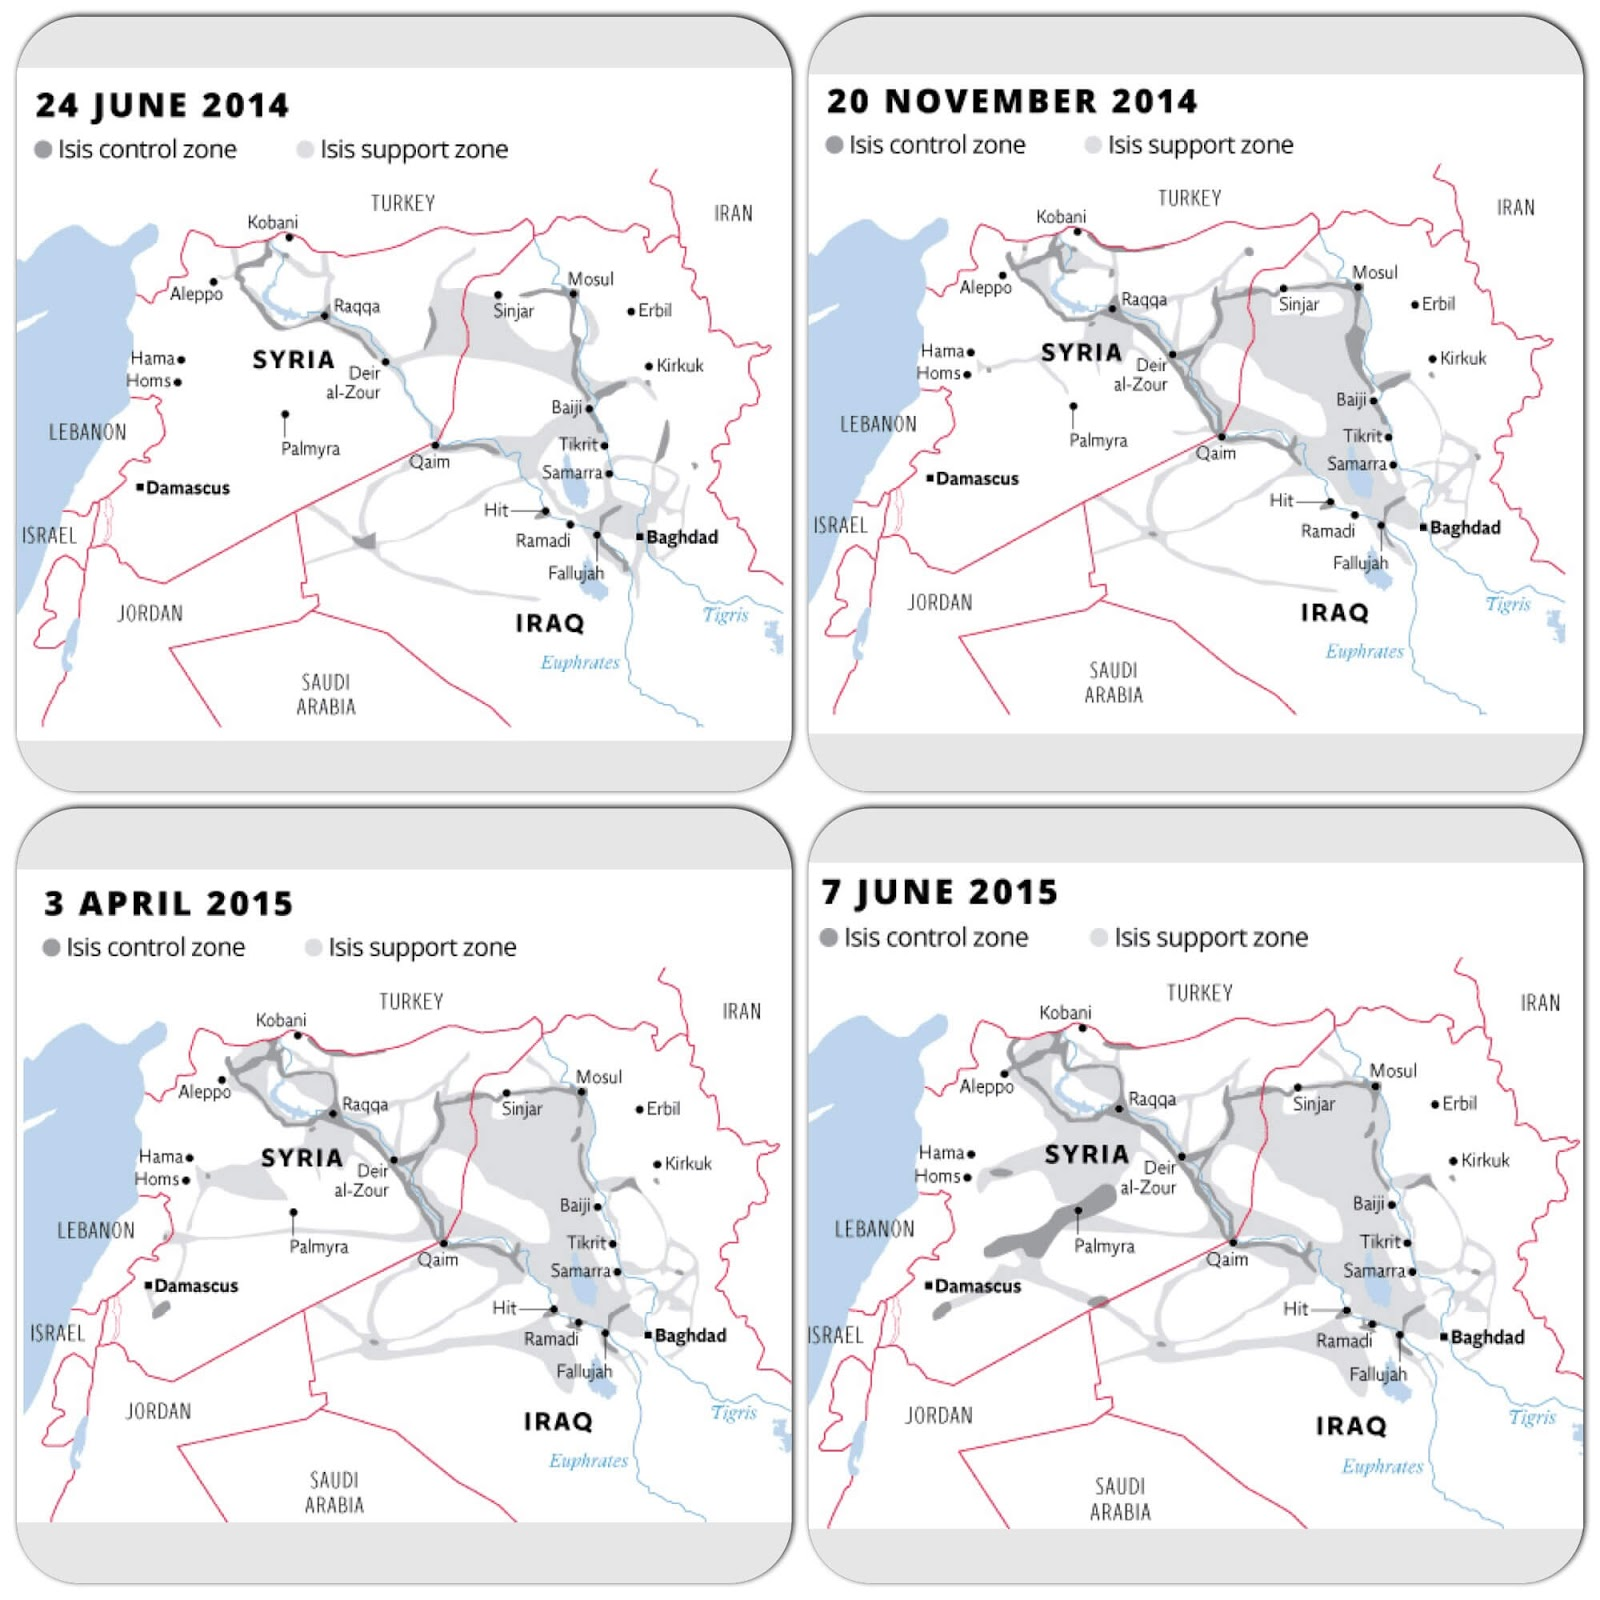 ISIS control zone (2014-2015)